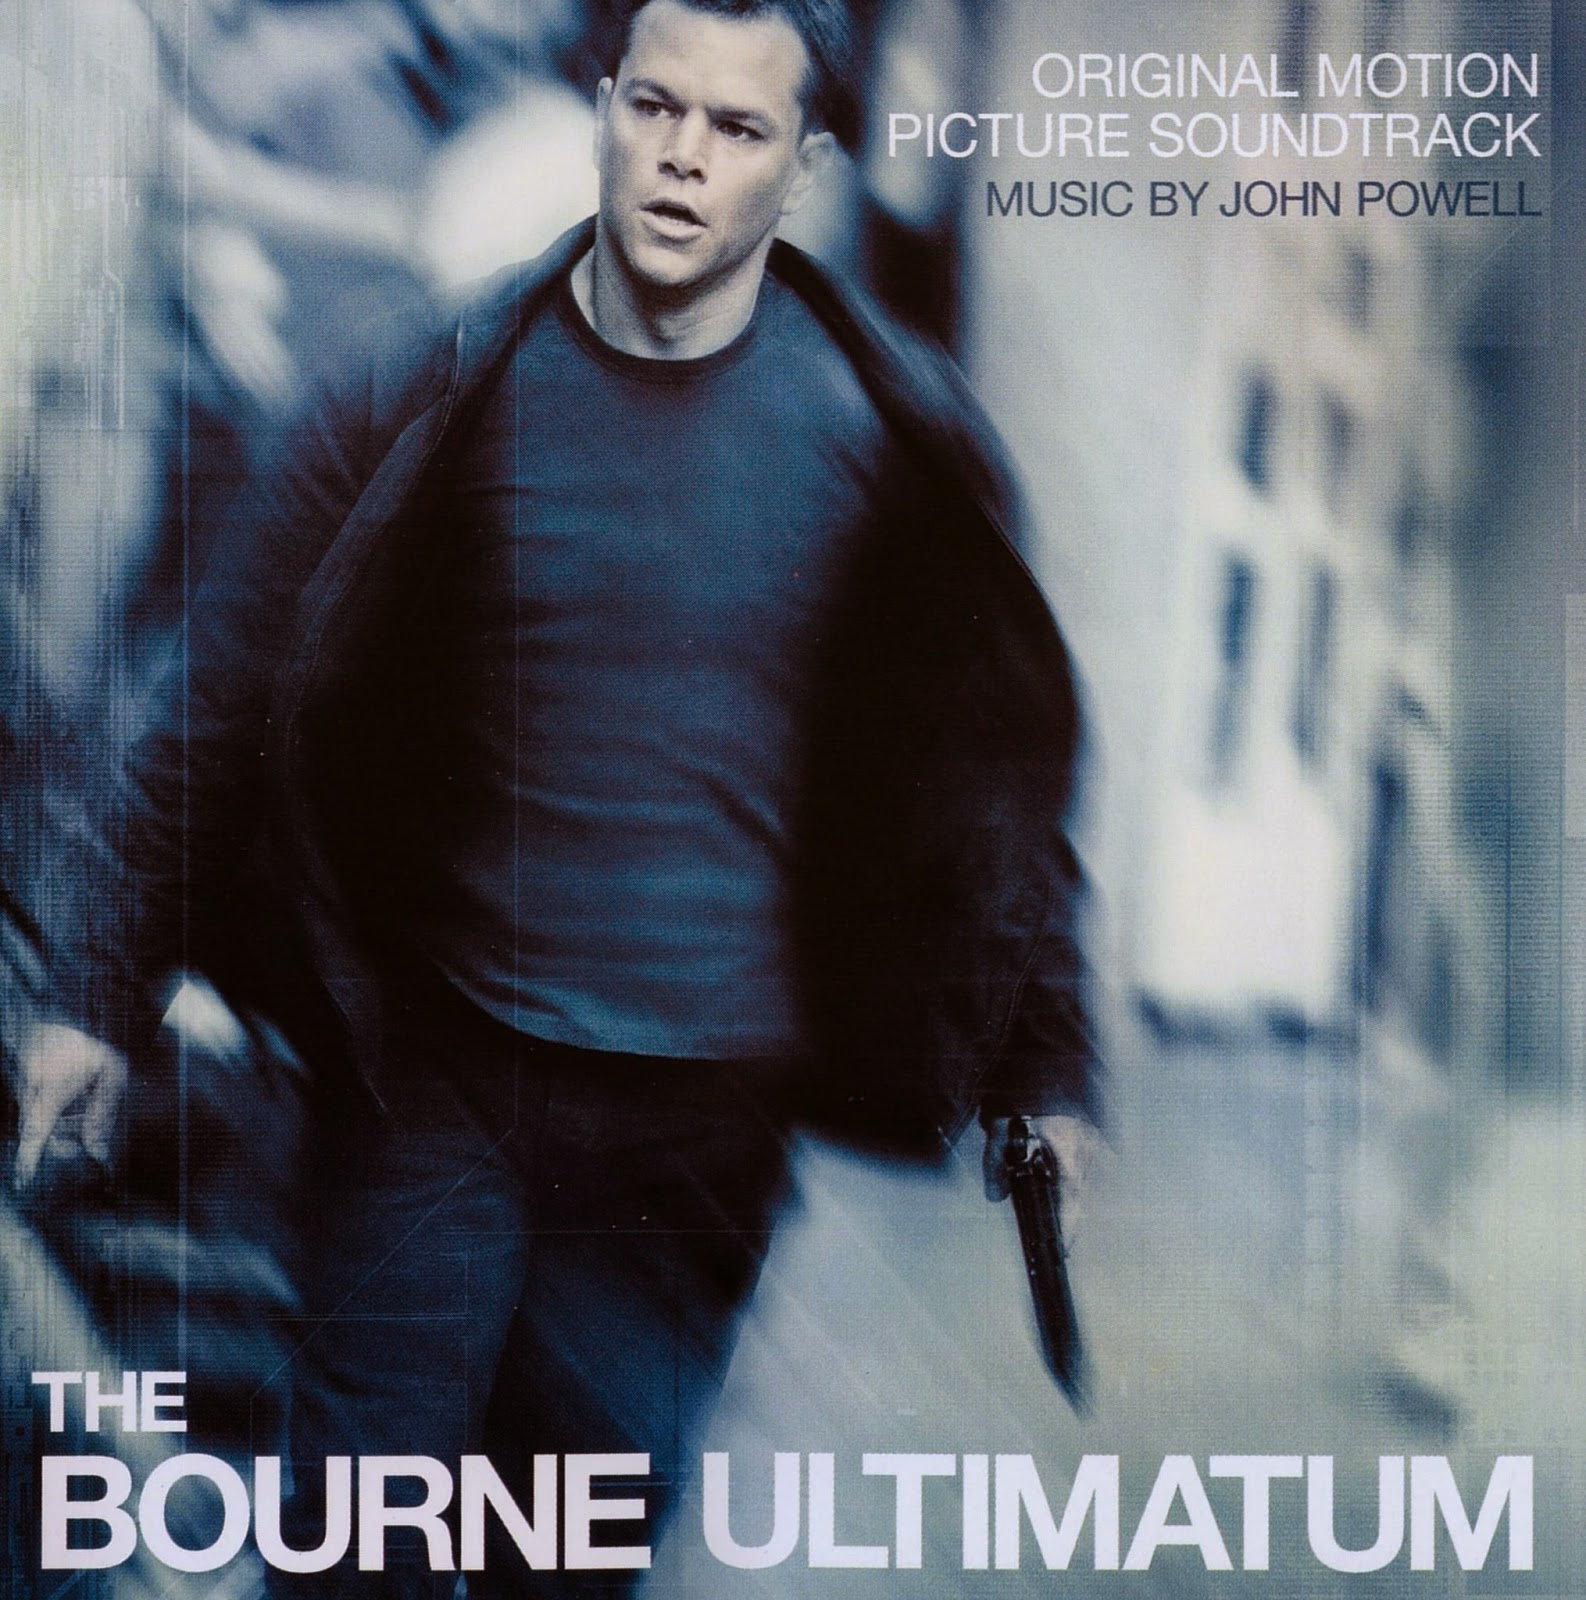 Brass Section In Movies The Bourne Ultimatum 2007